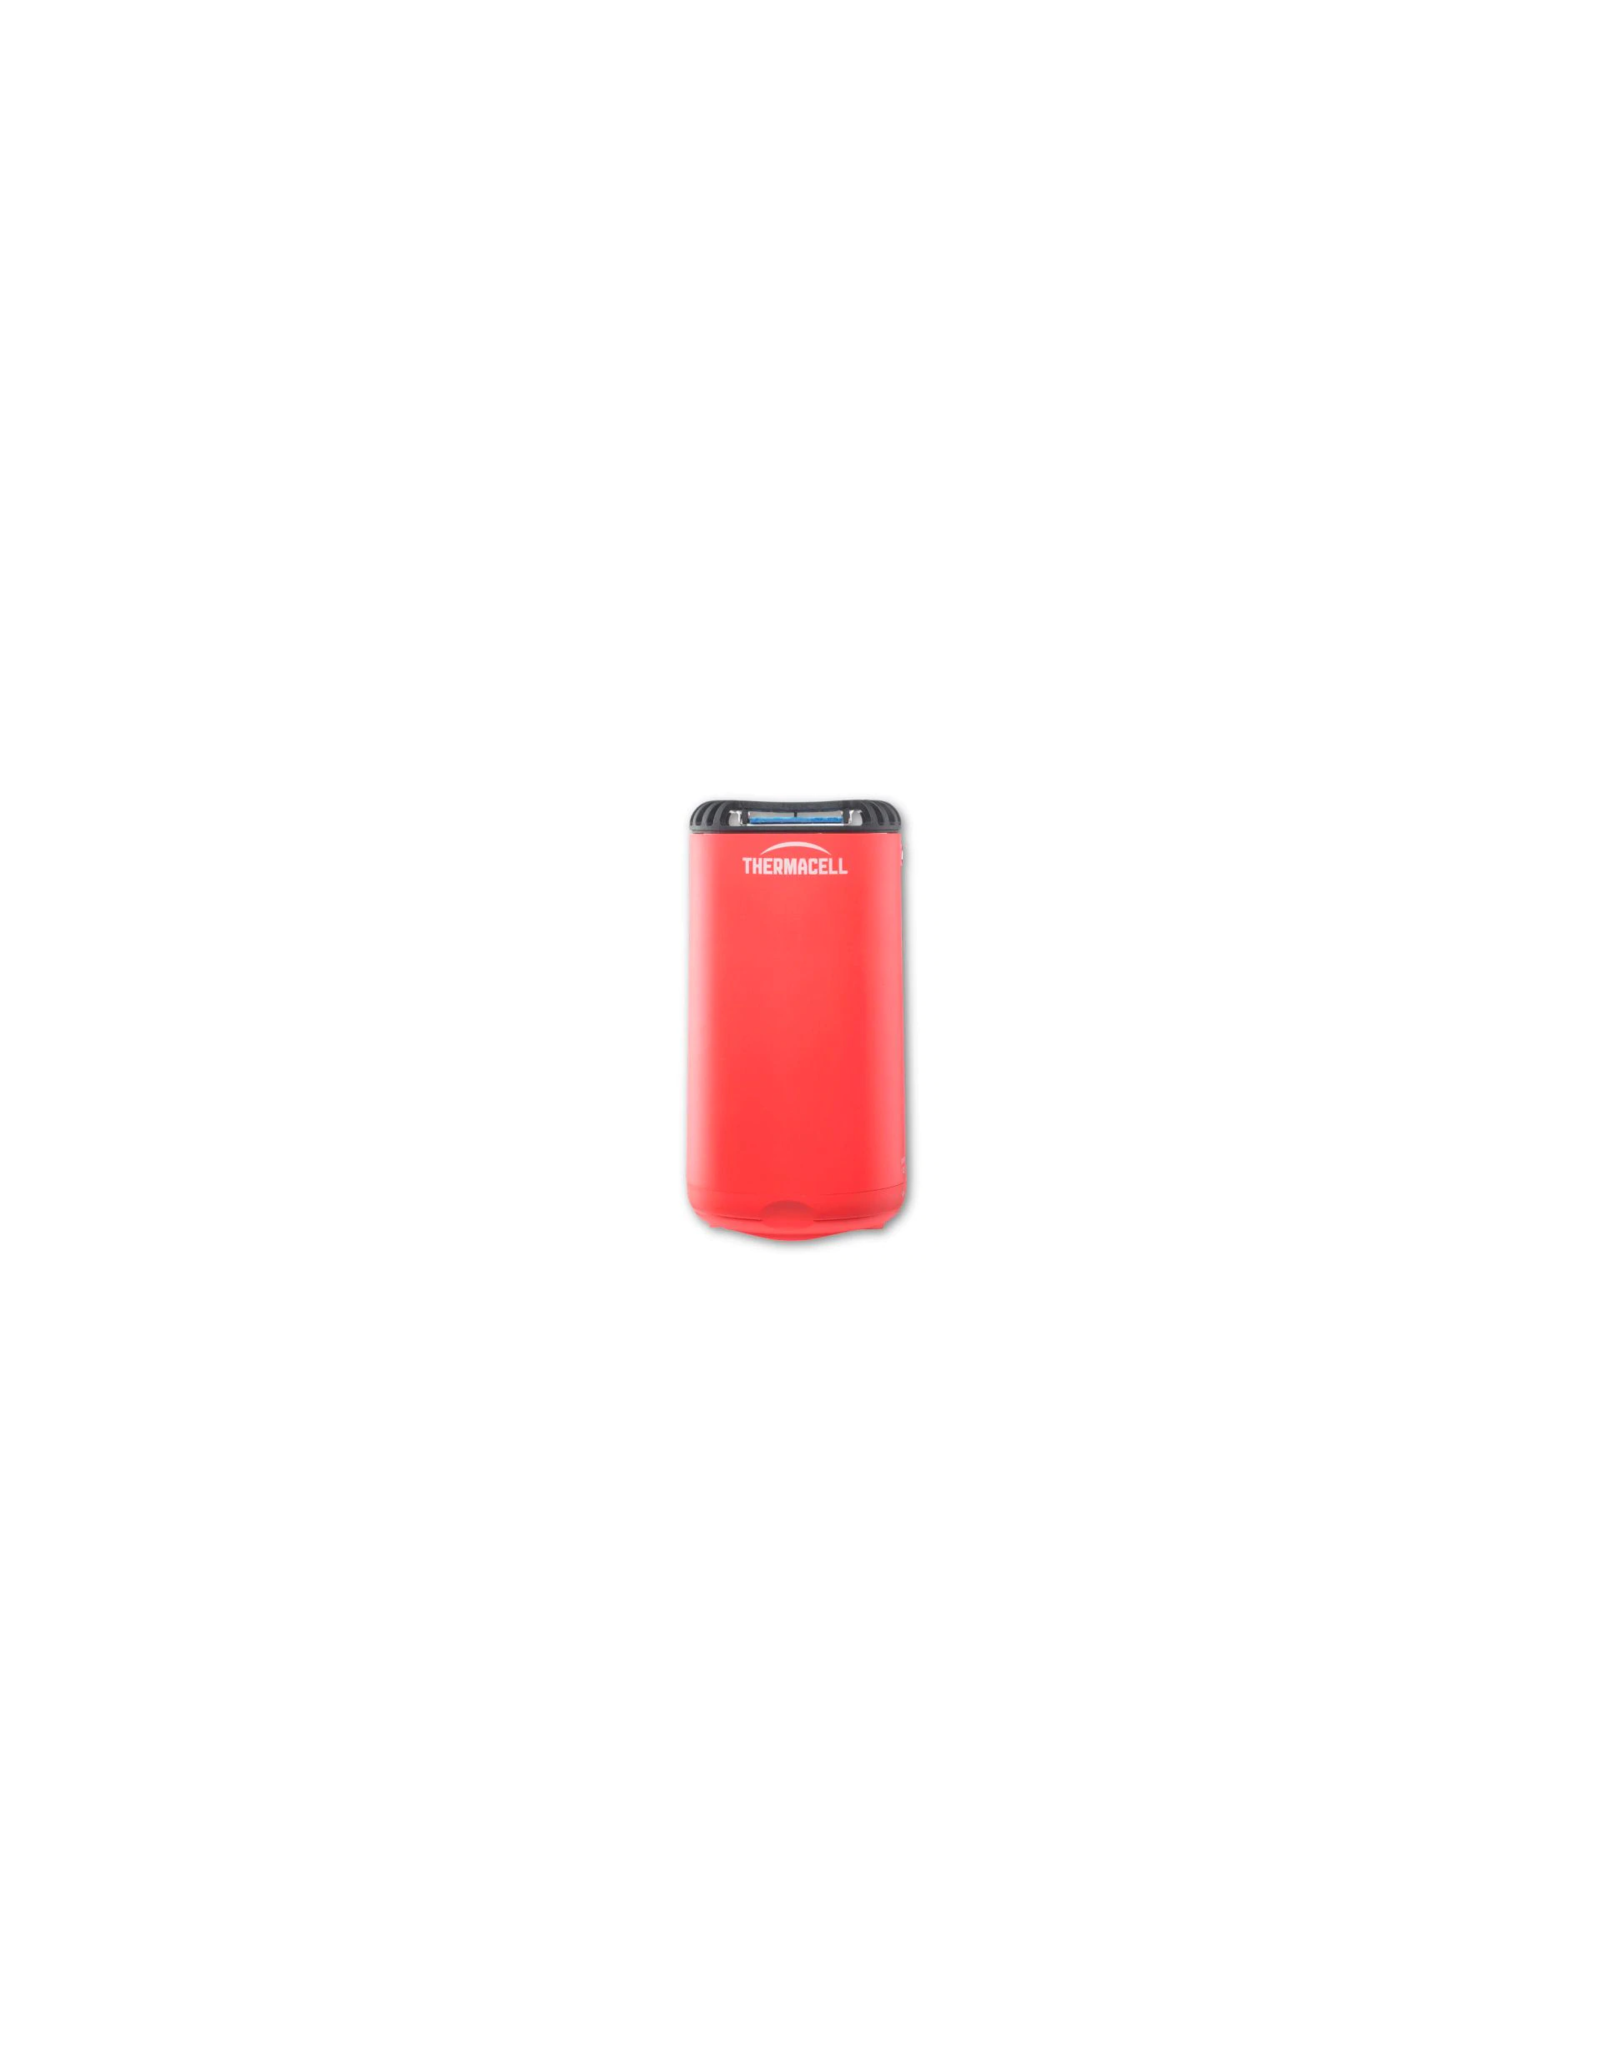 thermacell Thermacell Patio Shield mini repeller (RED)